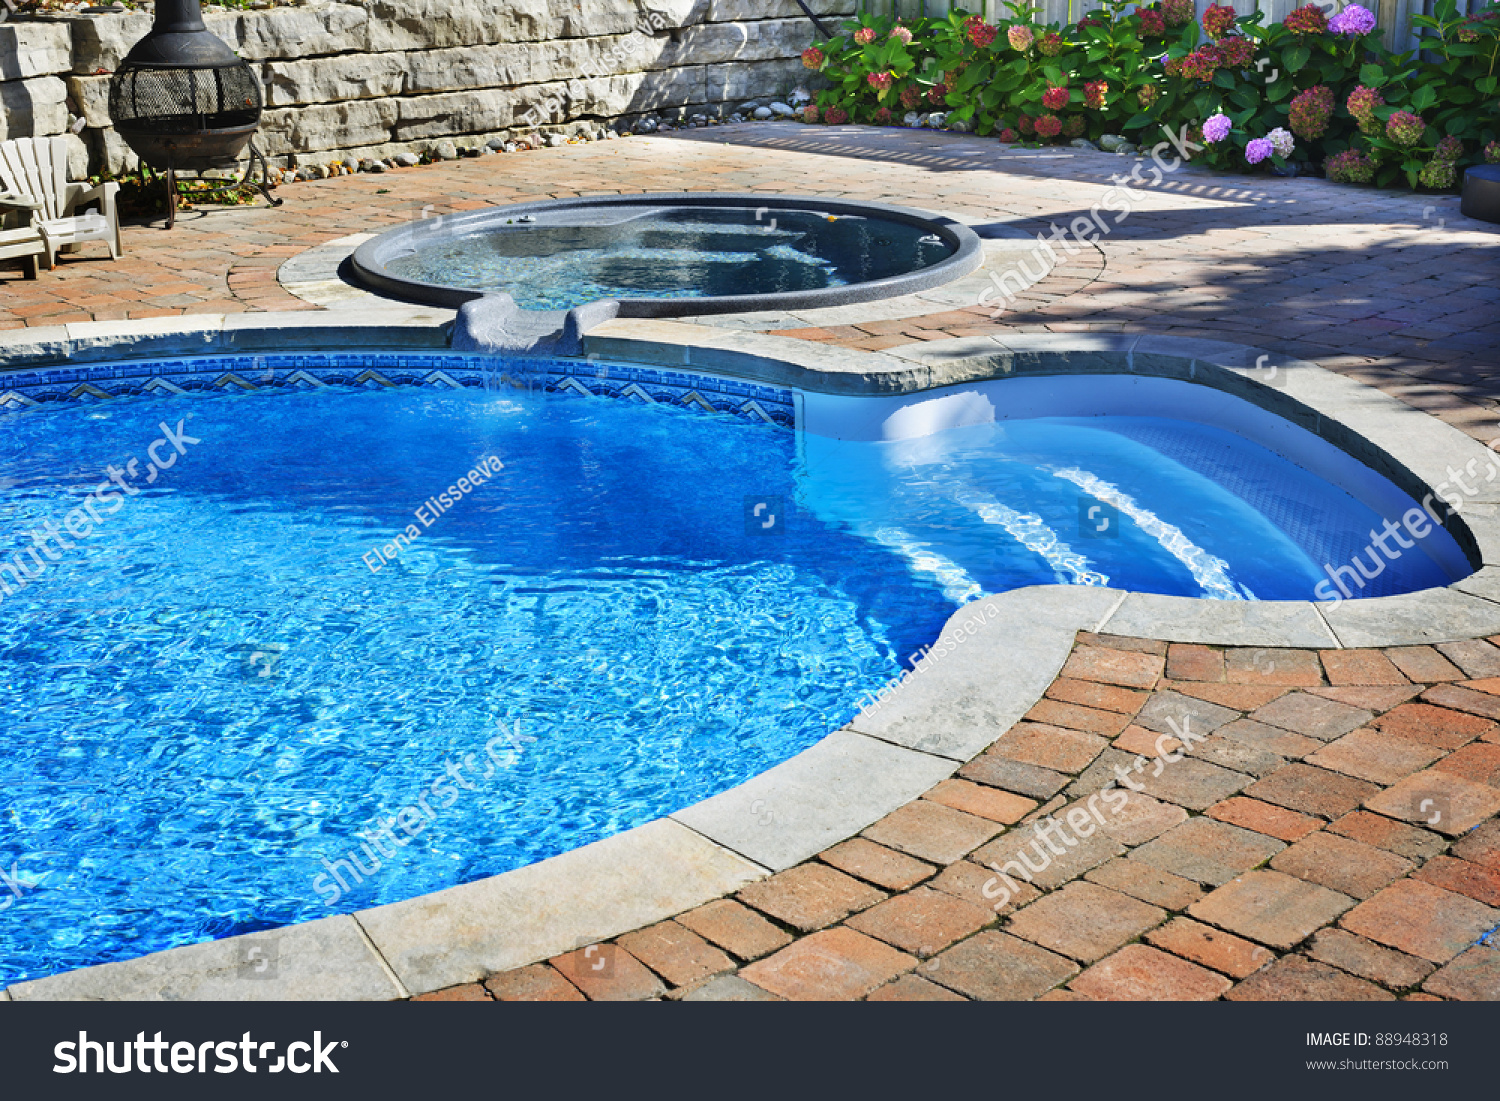 Outdoor Ground Residential Swimming Pool Backyard Stock Photo 88948318 Shutterstock